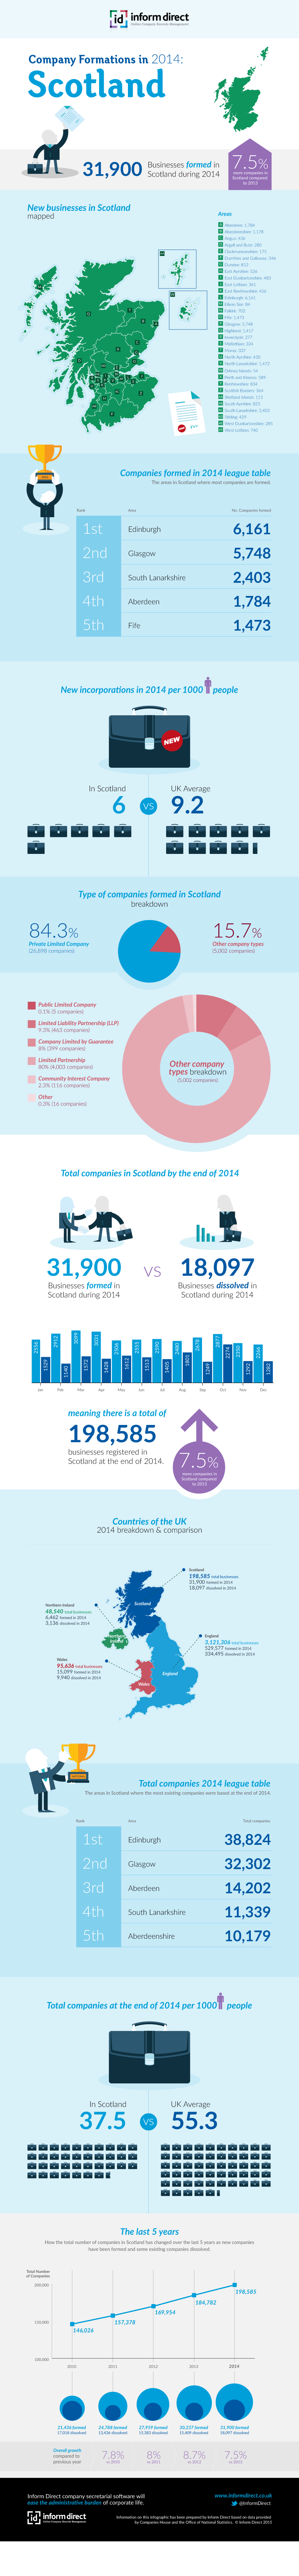 Inform Direct - Company Formations in Scotland 2014 Infographic